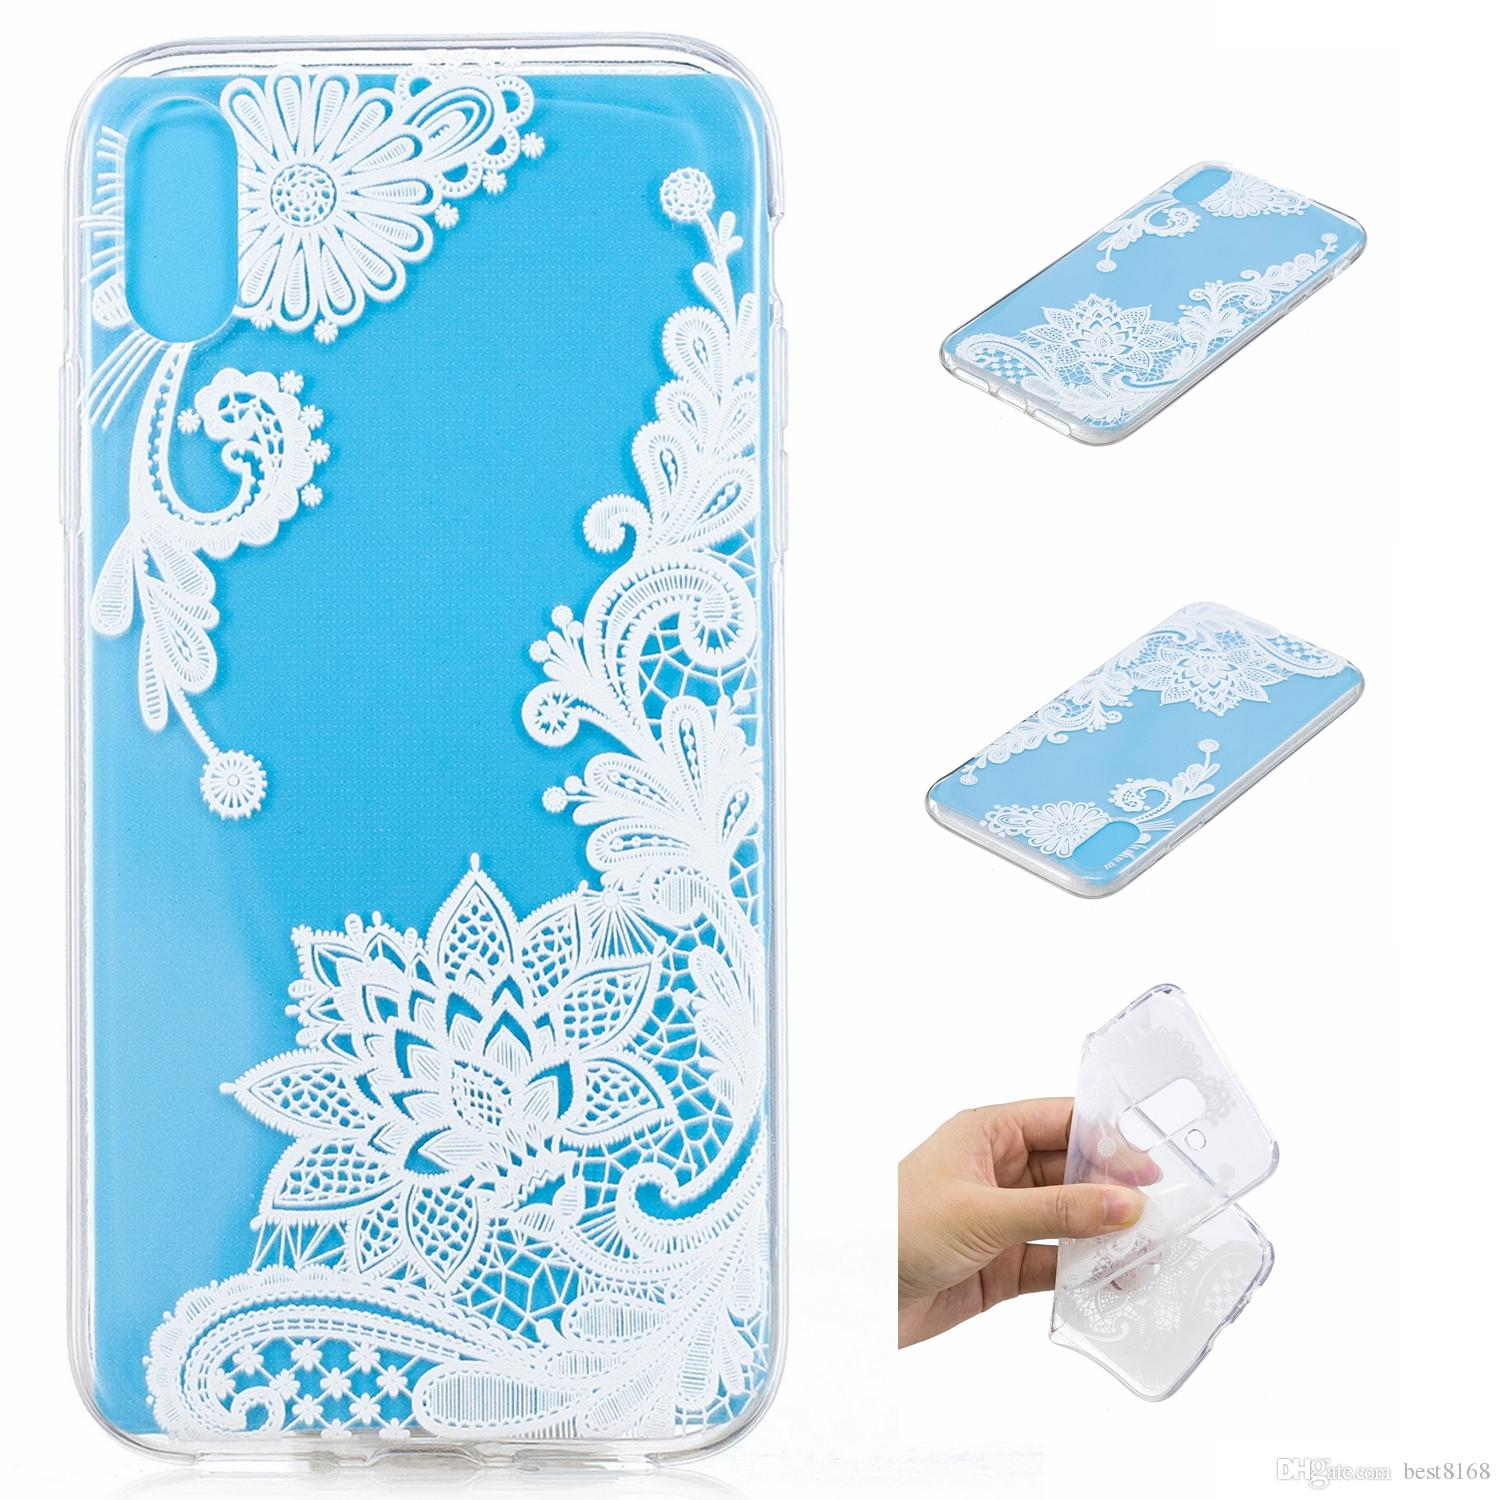 Soft Tpu Gel Case For Huawei Y6 2018 Honor 10 Xiaomi 8 Mi8 Mix 2s Glitter Bling Wrap Skin Mi Max Note 5 Pro Redmi 5a 4x One Plus 6 Unicorn Butterfly Flower Lace Cover Buy Cell